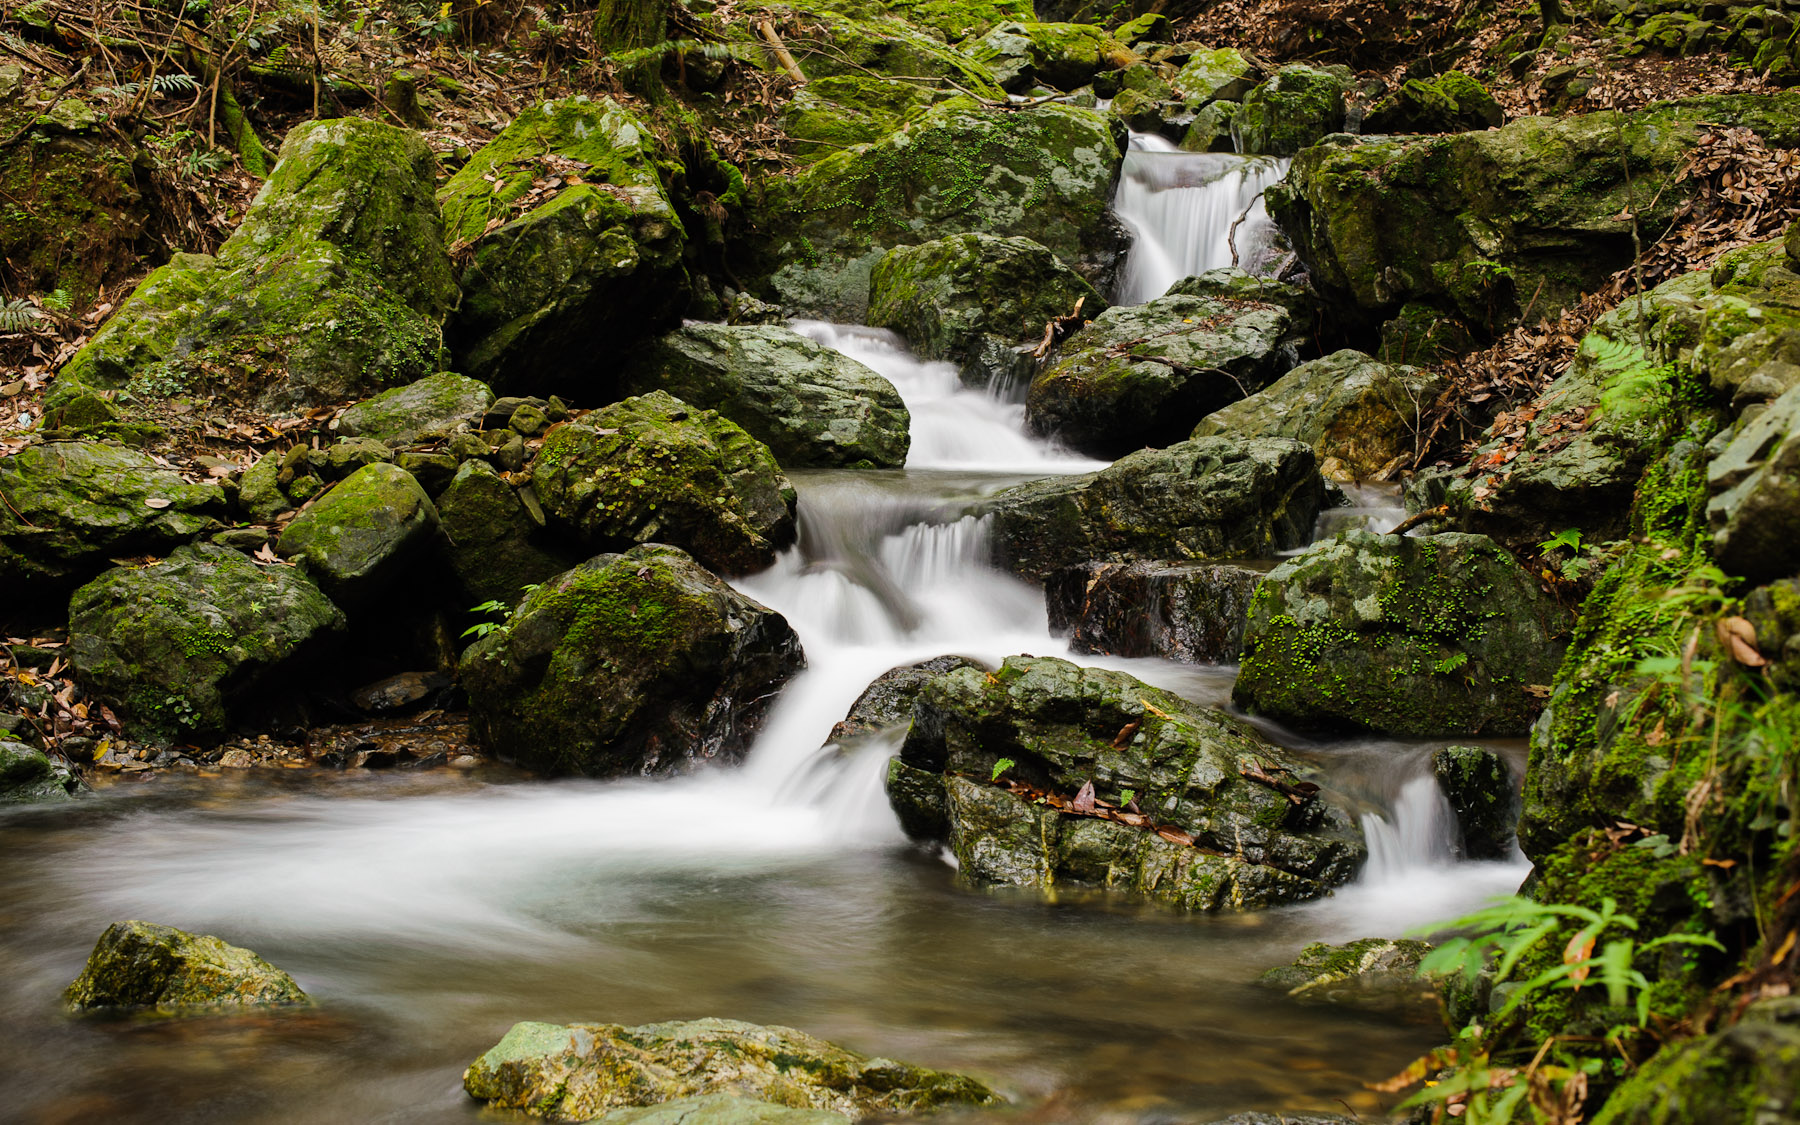 desktop background image of an okay stream/waterfall shot, from the  mountains of Kyoto